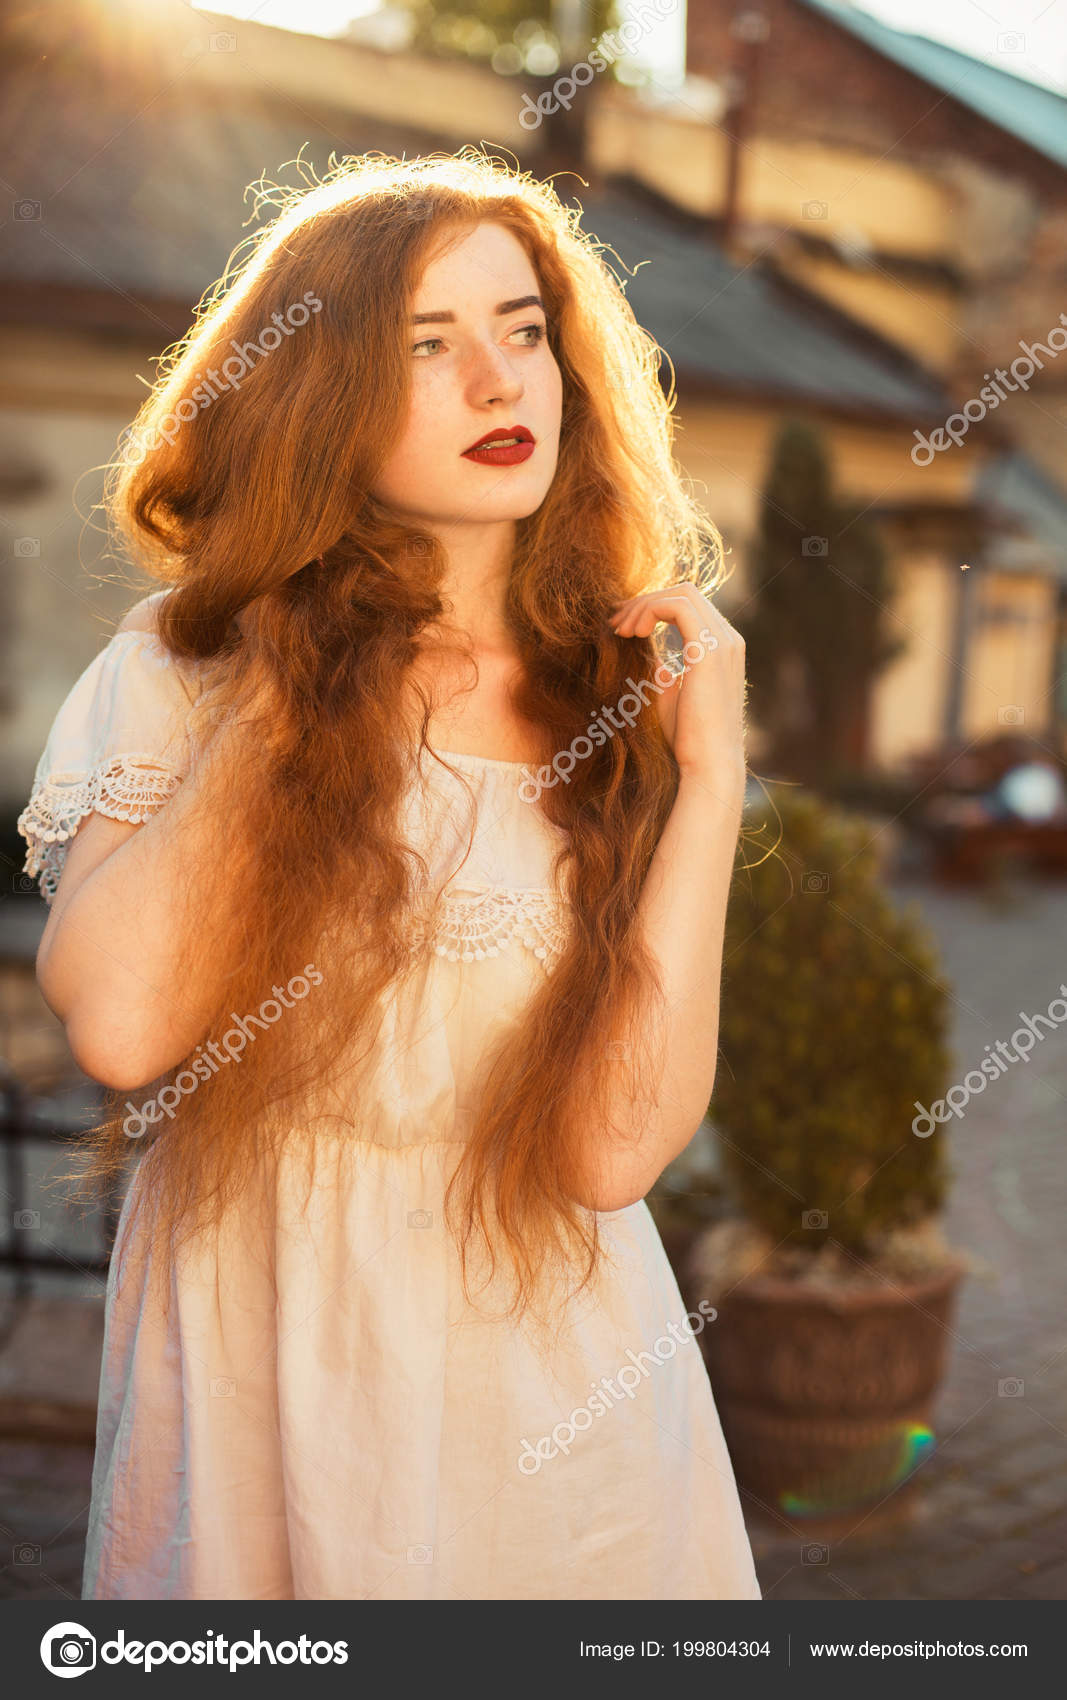 Amazing Ginger Young Woman Naked Long Wavy Hair Posing Sun ...